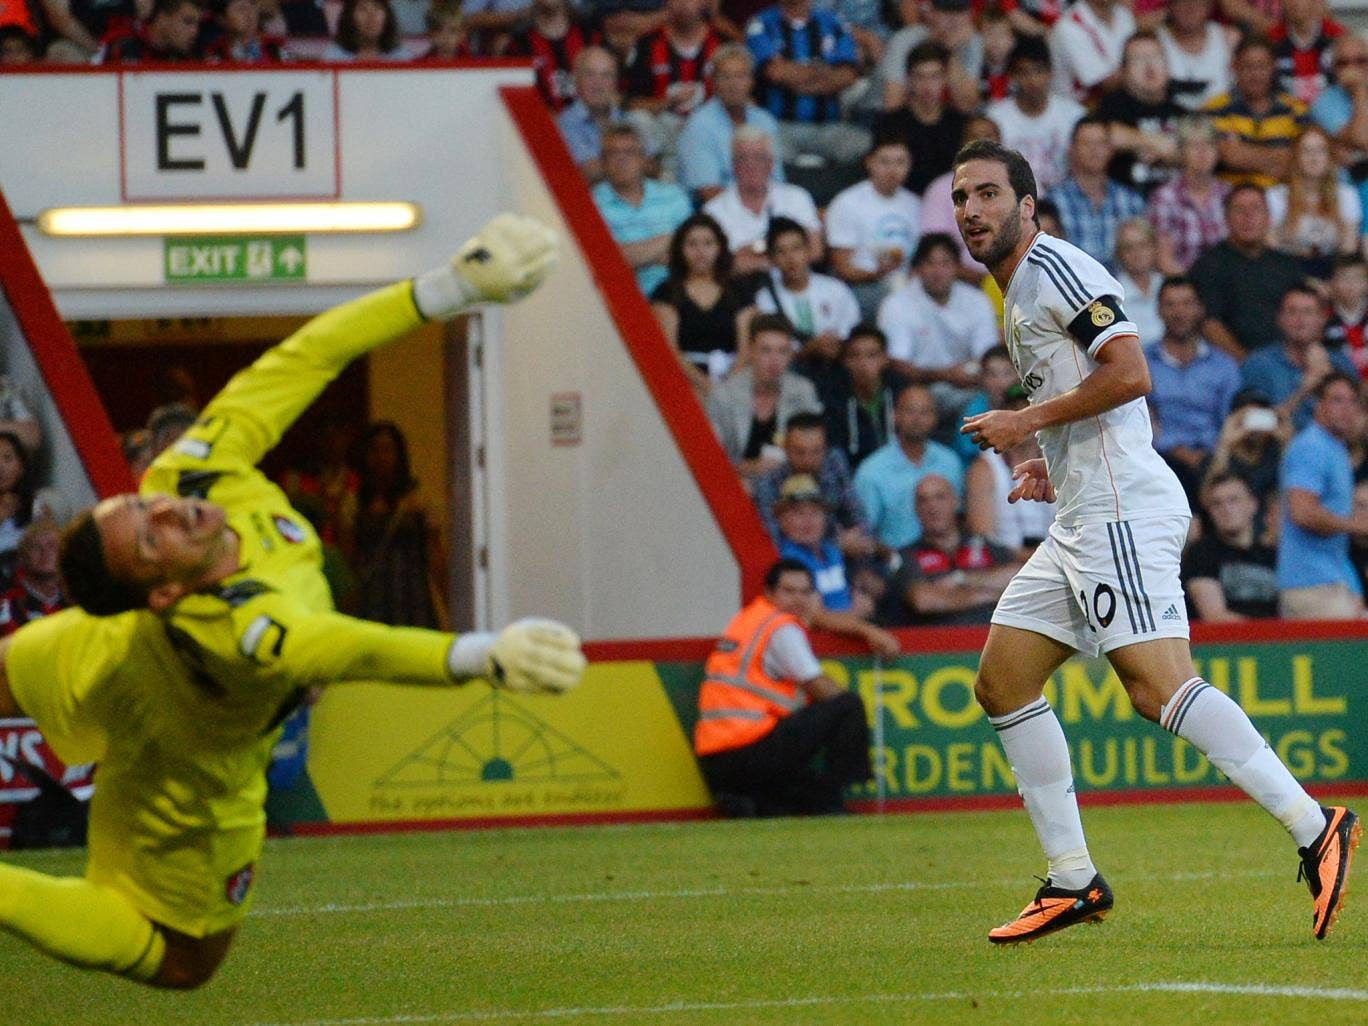 Gonzalo Higuain scores in Real Madrid's pre-season friendly against Bournemouth at Dean Road